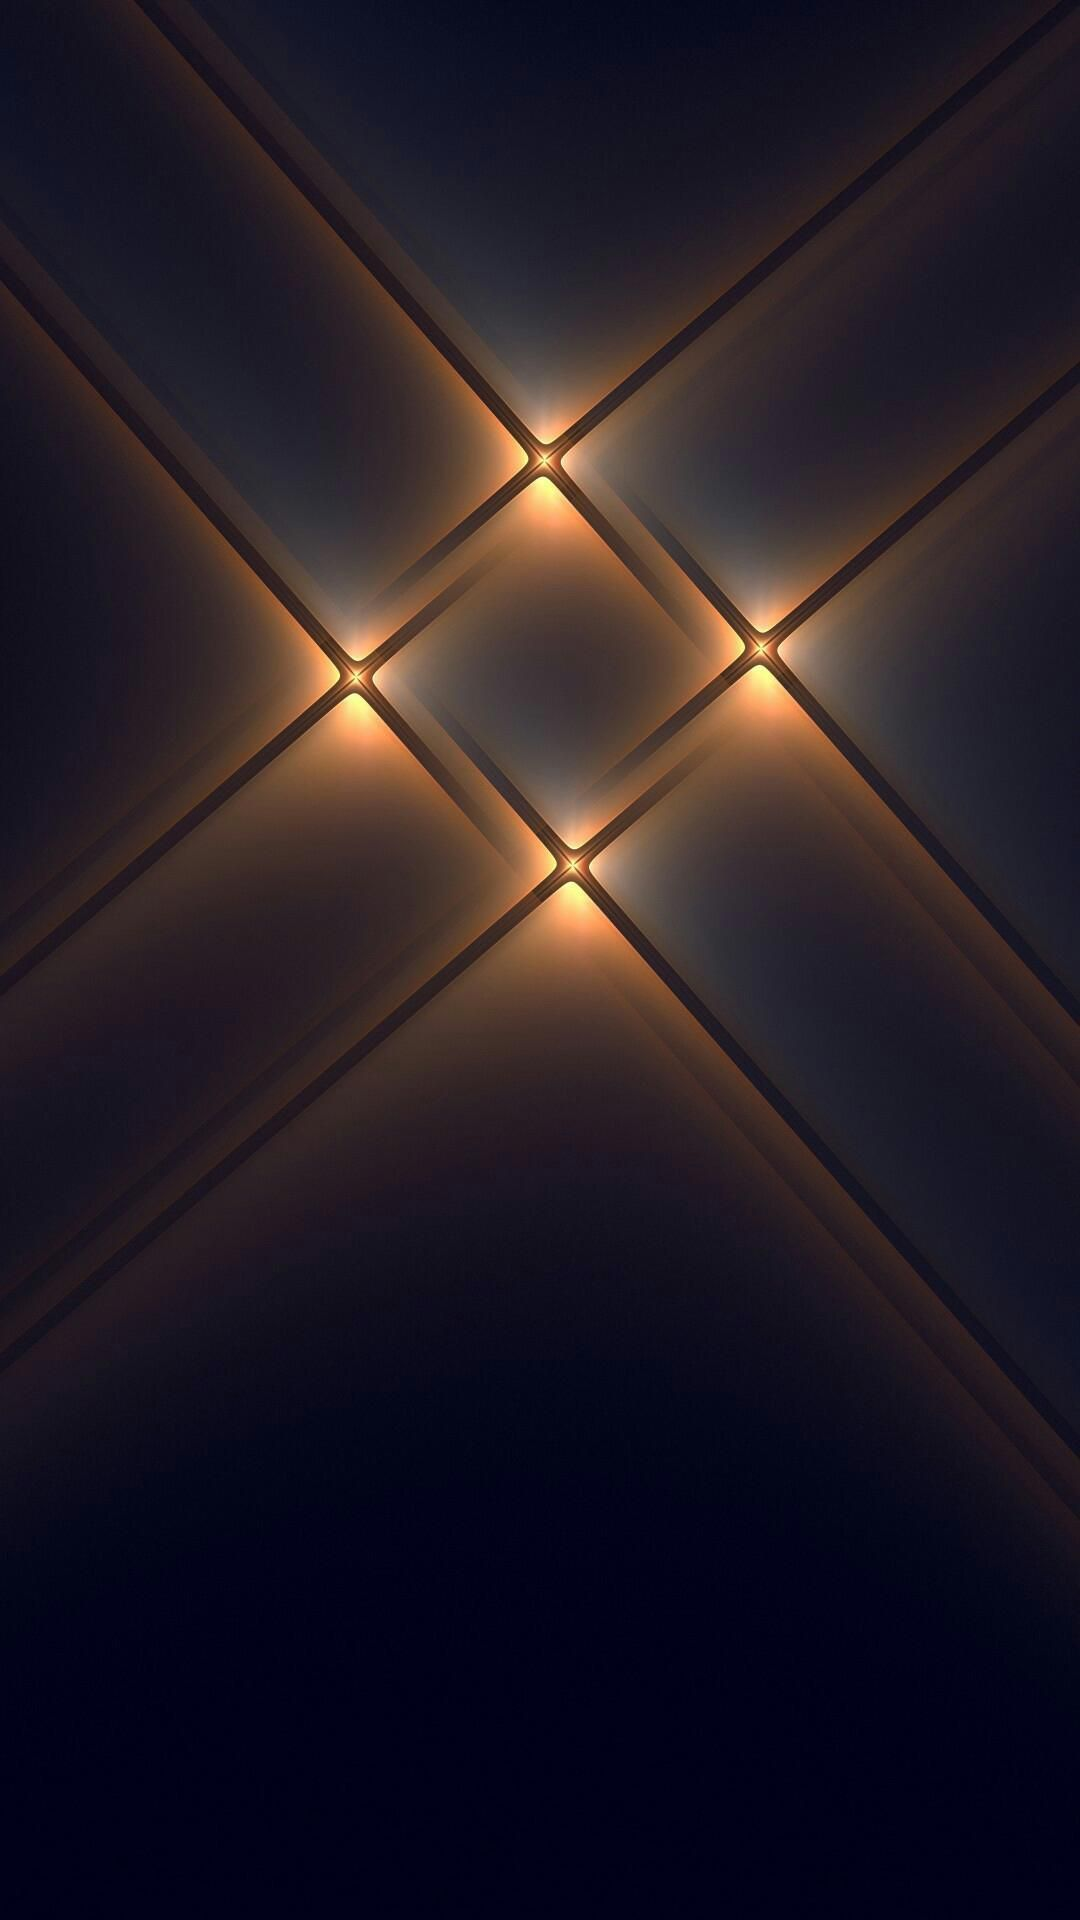 Abstract Blue Gold Hd Wallpaper Android Grey And Gold Wallpaper Gold Wallpaper Blue And Gold Wallpaper